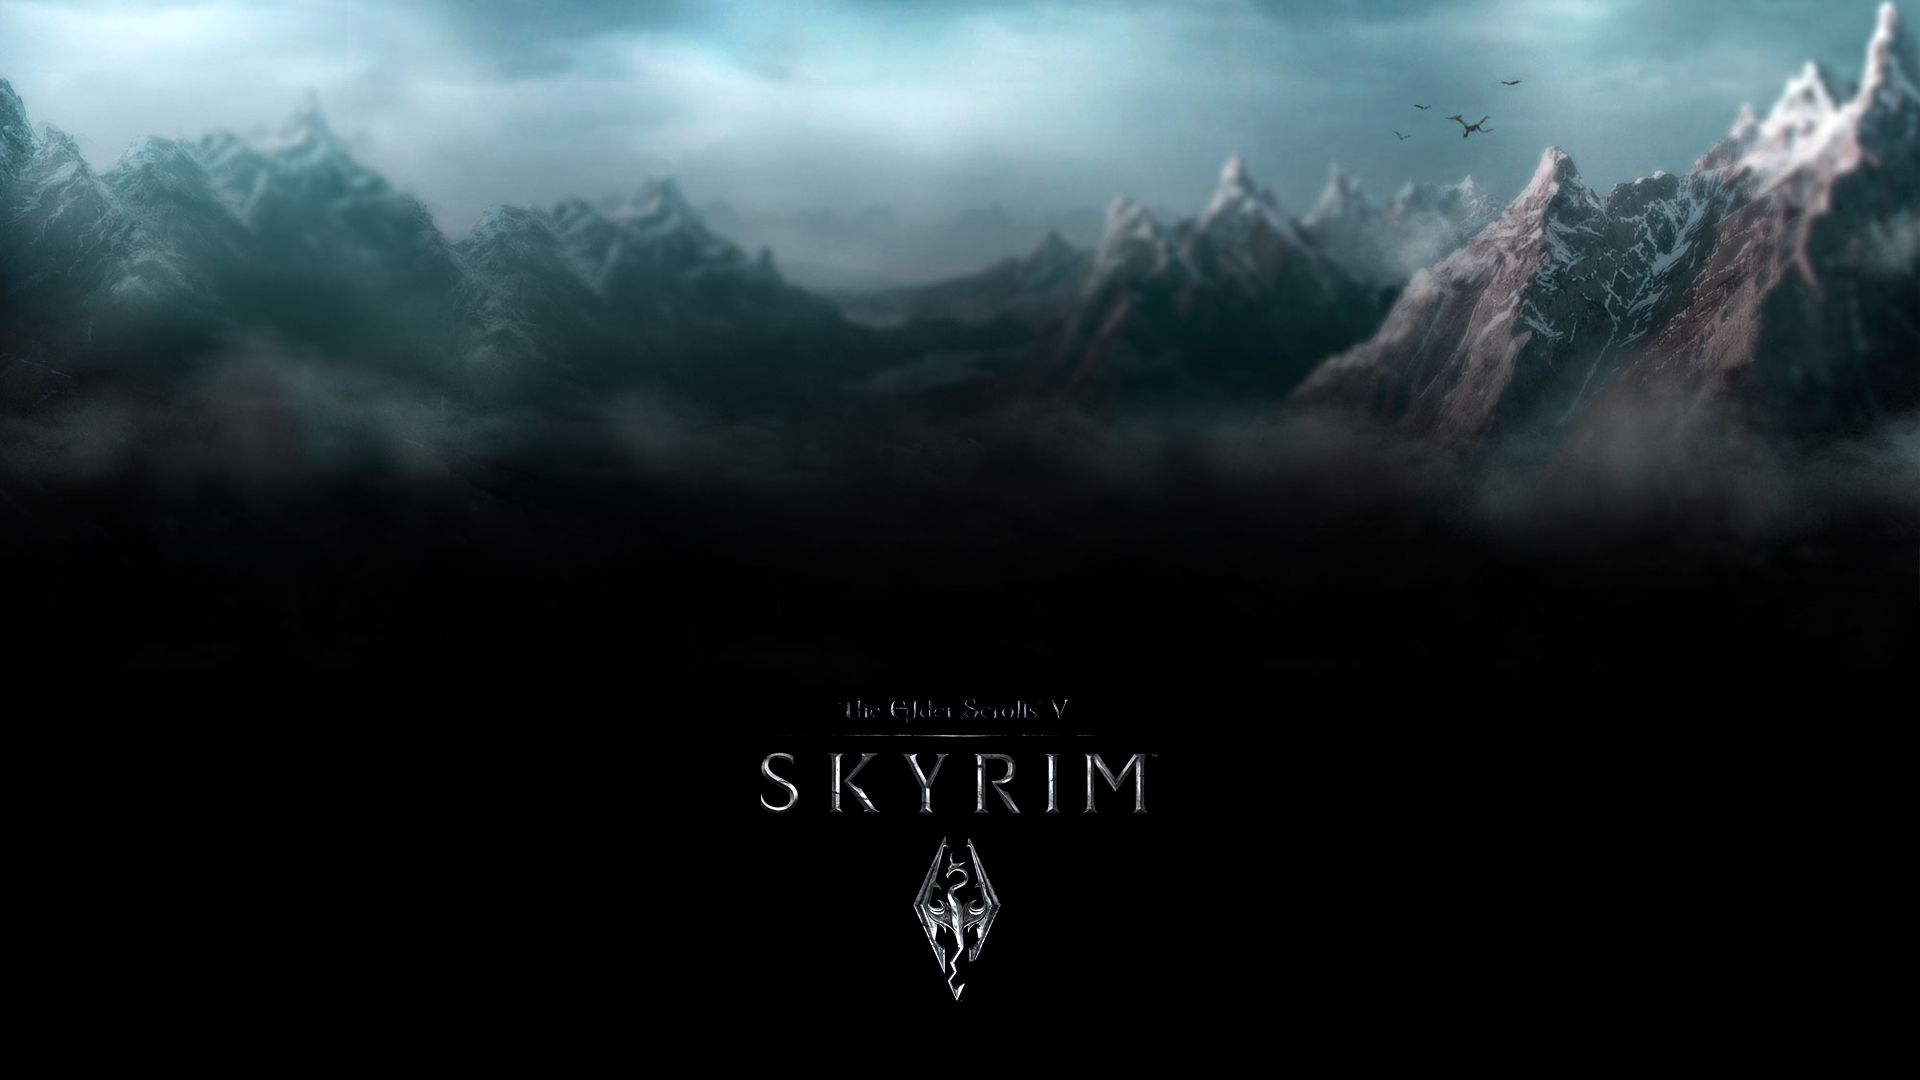 Skyrim 4k Wallpaper For Mobile Skyrim Skyrim Wallpaper